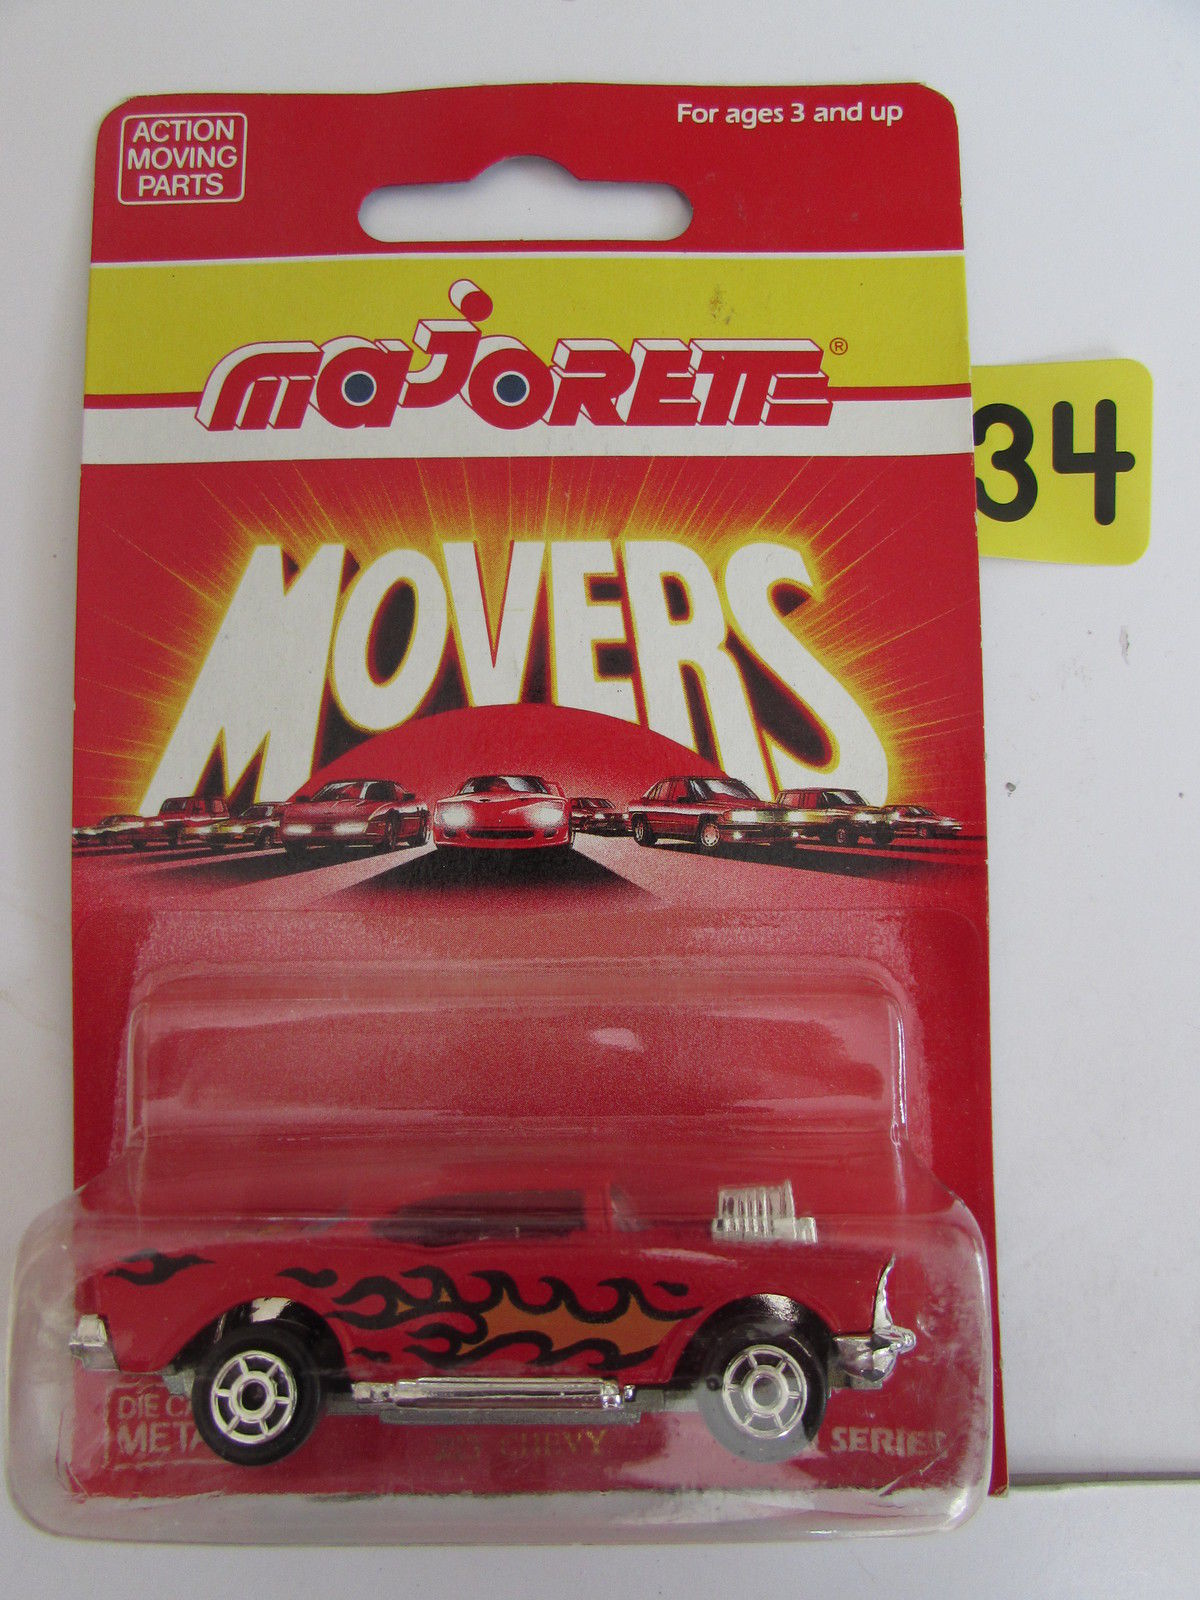 MAJORETTE MOVERS ACTION MOVING PARTS - 223 CHEVY DIECAST METAL - 200 SERIES